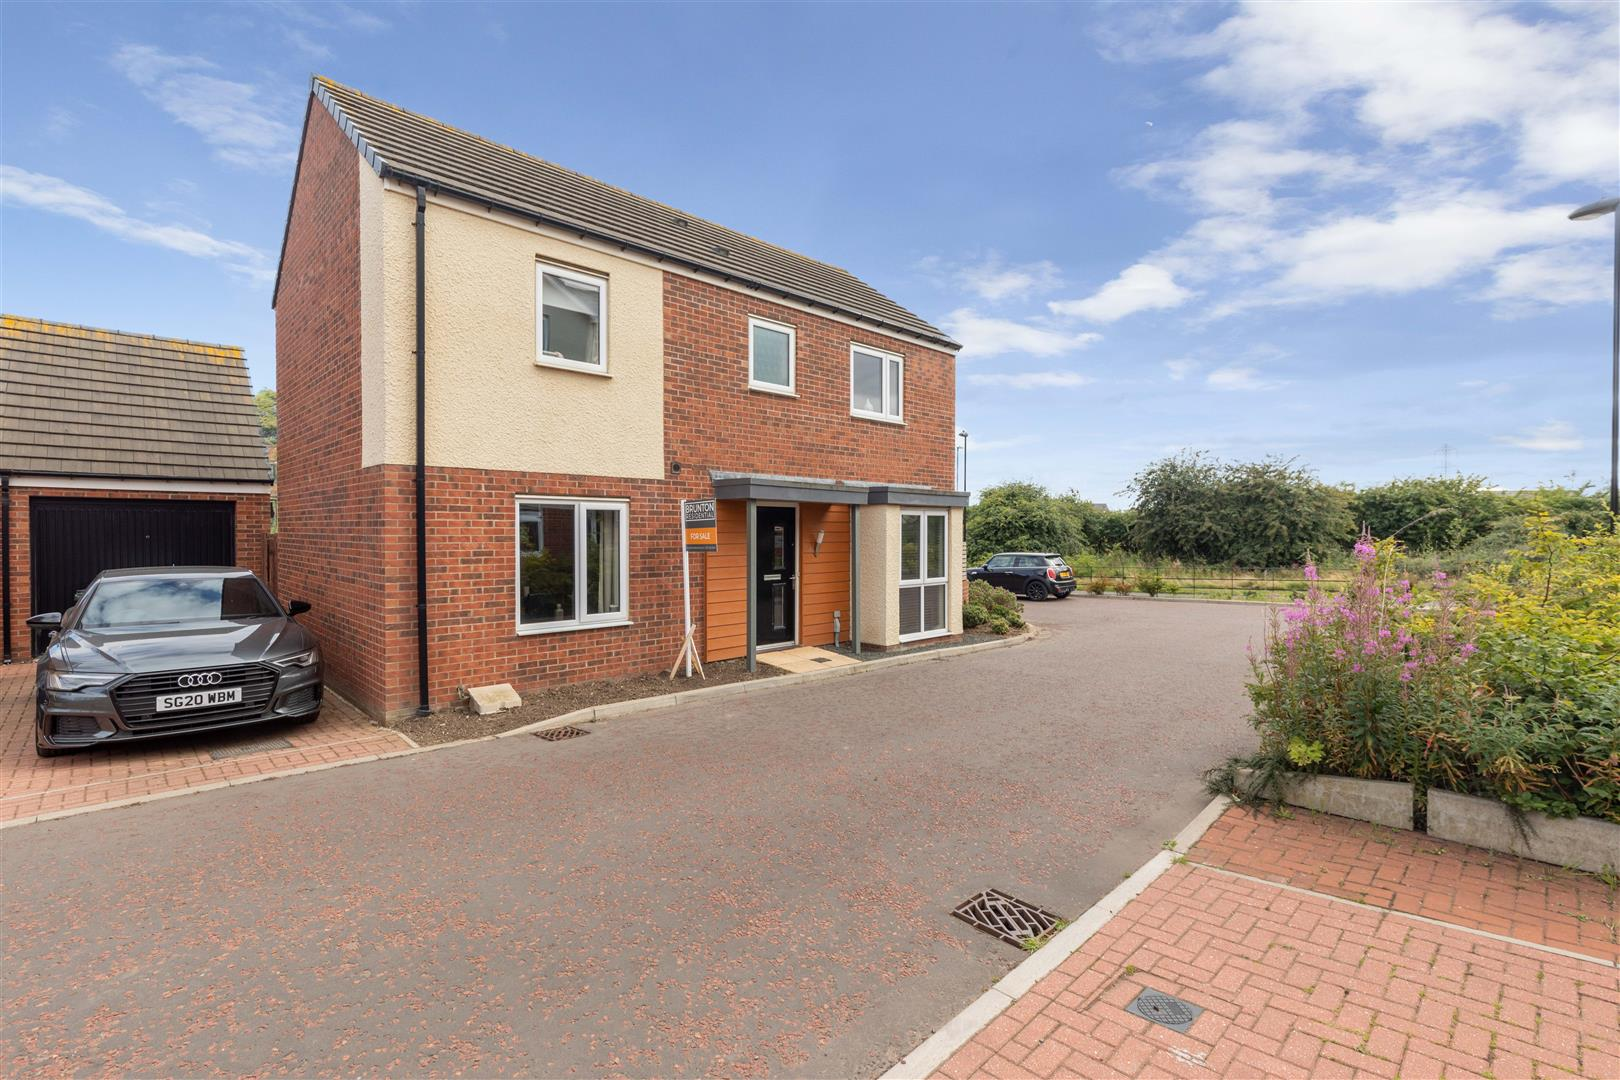 3 bed detached house for sale in Newcastle Upon Tyne, NE13 9BW - Property Image 1